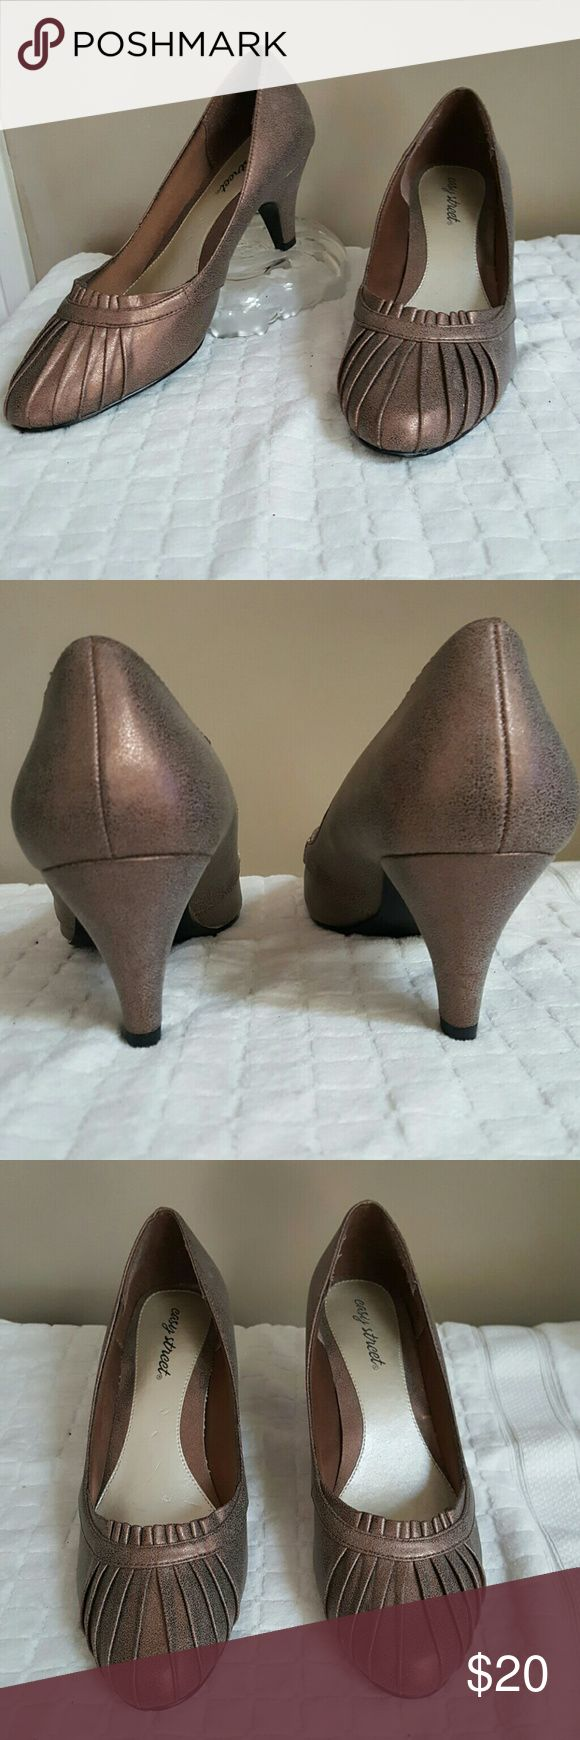 "Easy Street Comfy Heels sz 11 WW Wide Width Very comfortable & stylish 3"" heel.  In excellent condition. Color is exctly as pictured. Easy Street Shoes Heels"